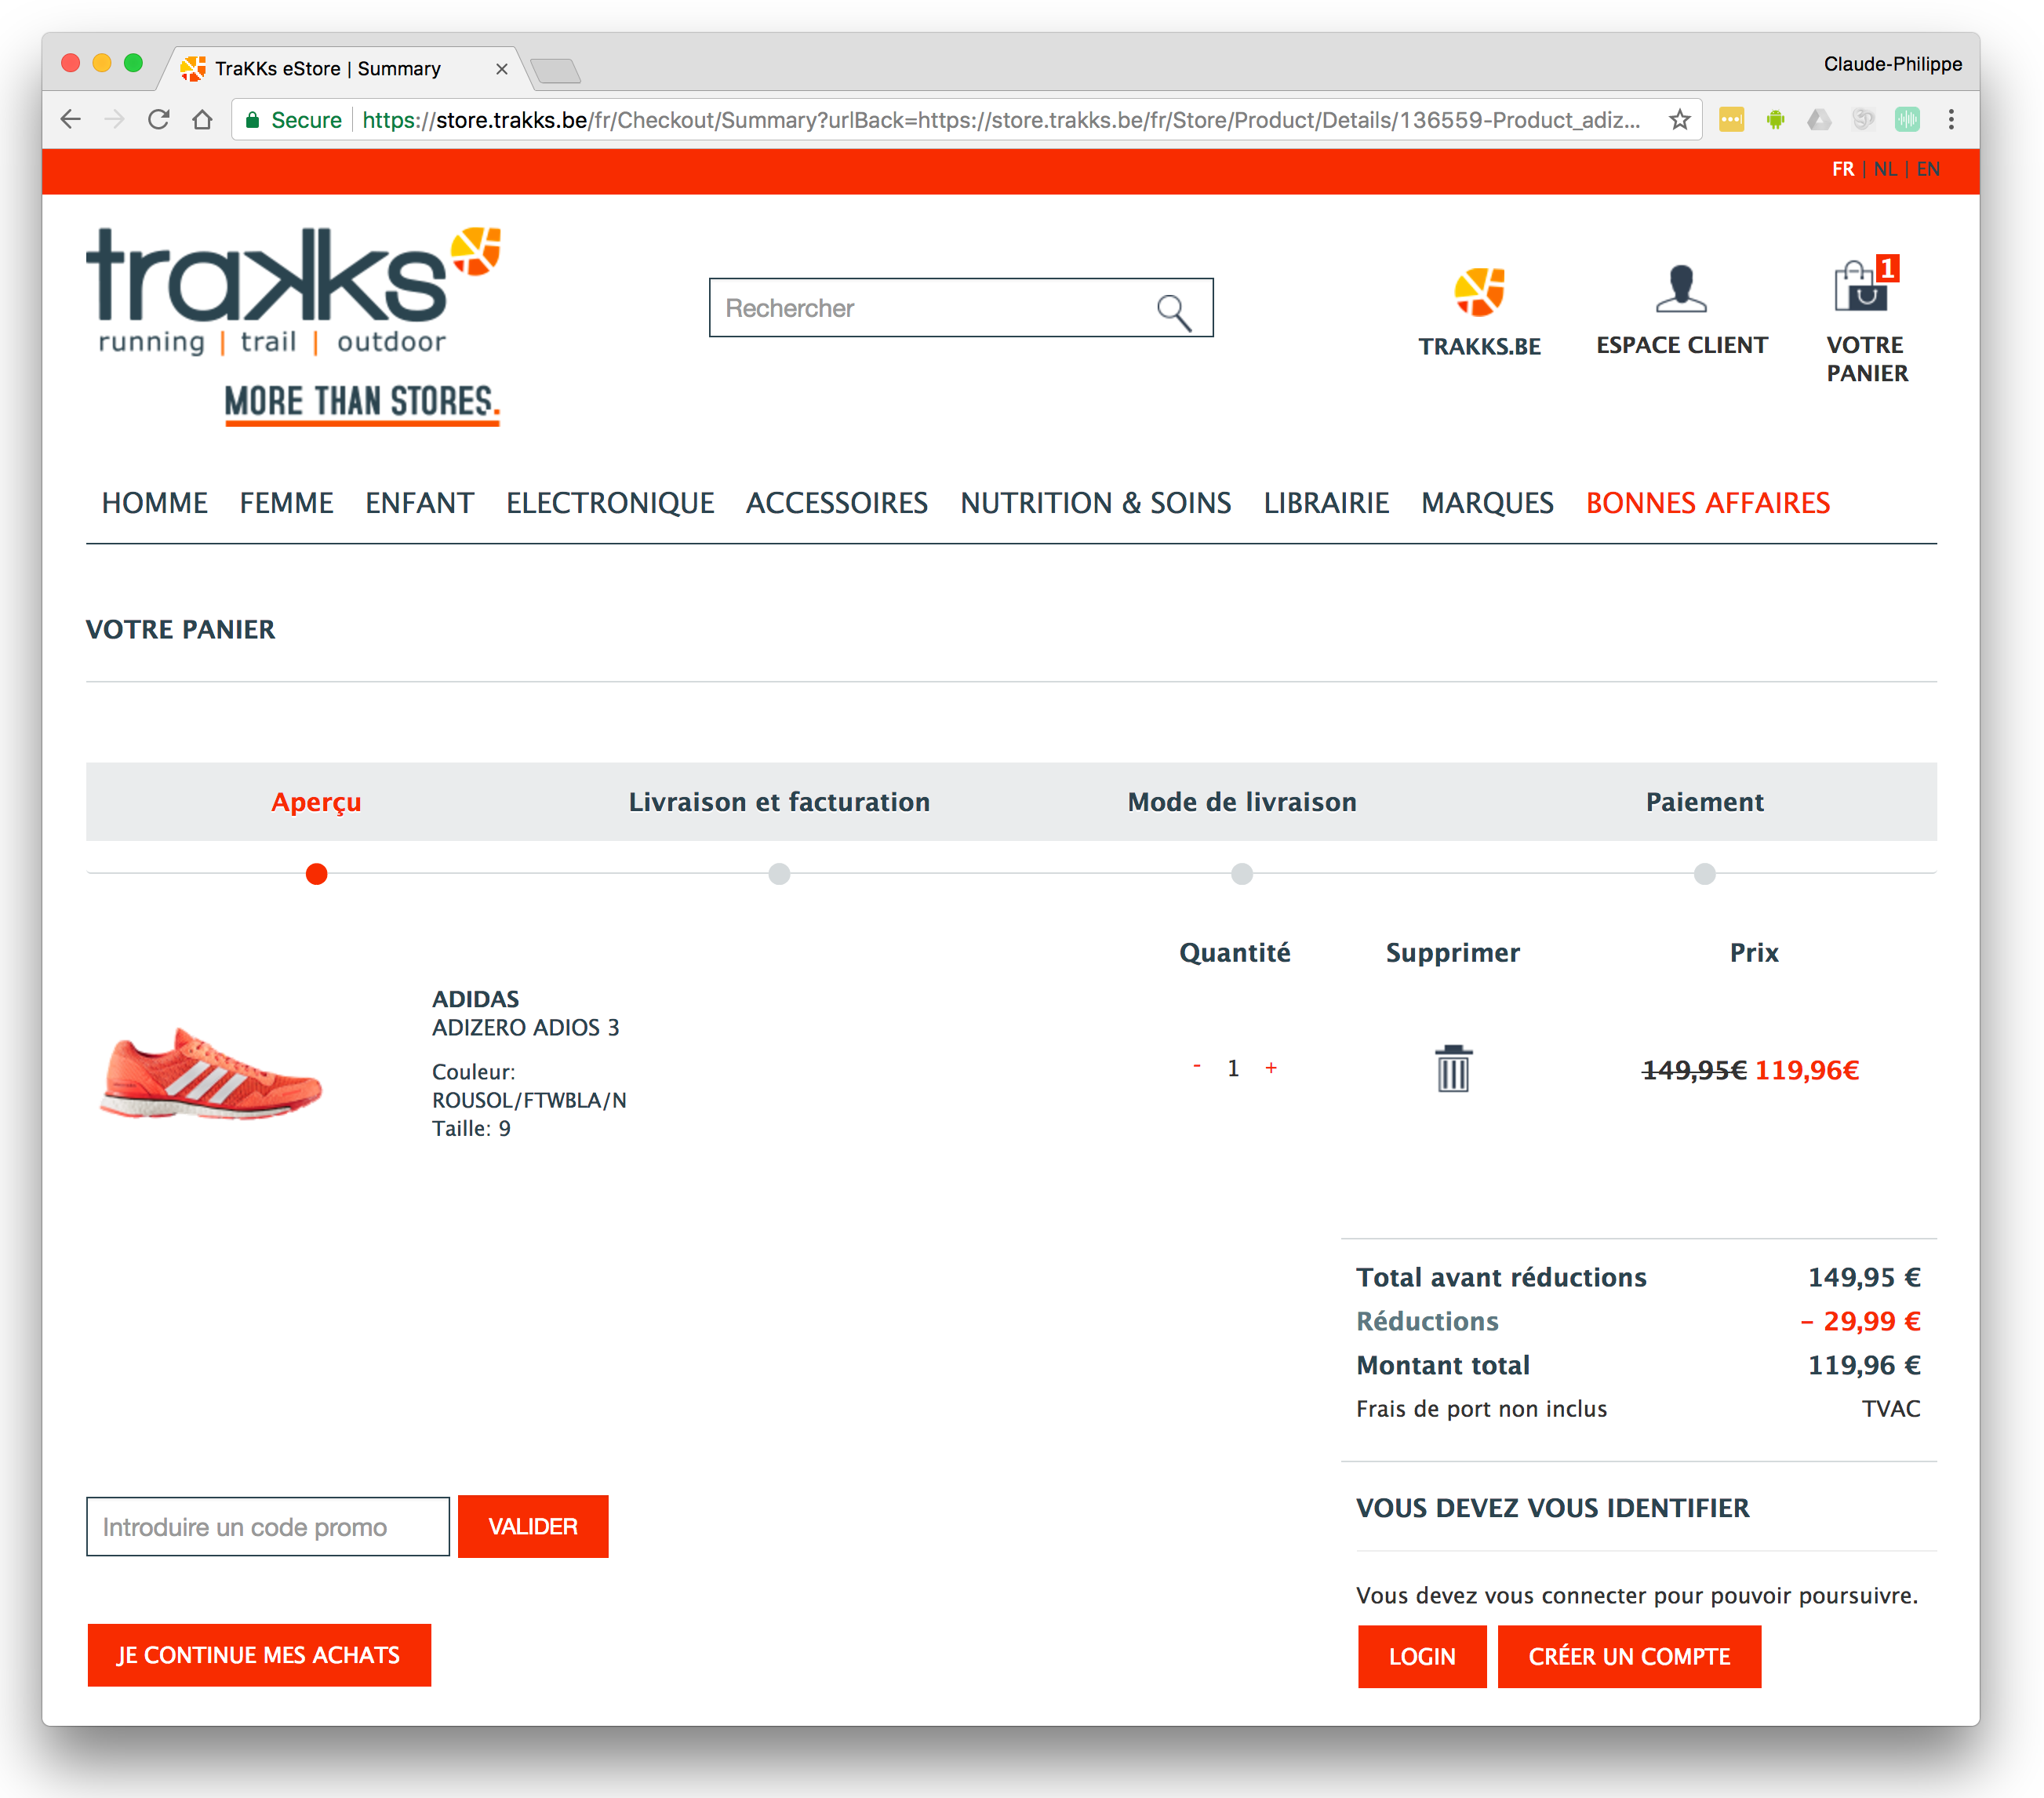 Trakks e-commerce